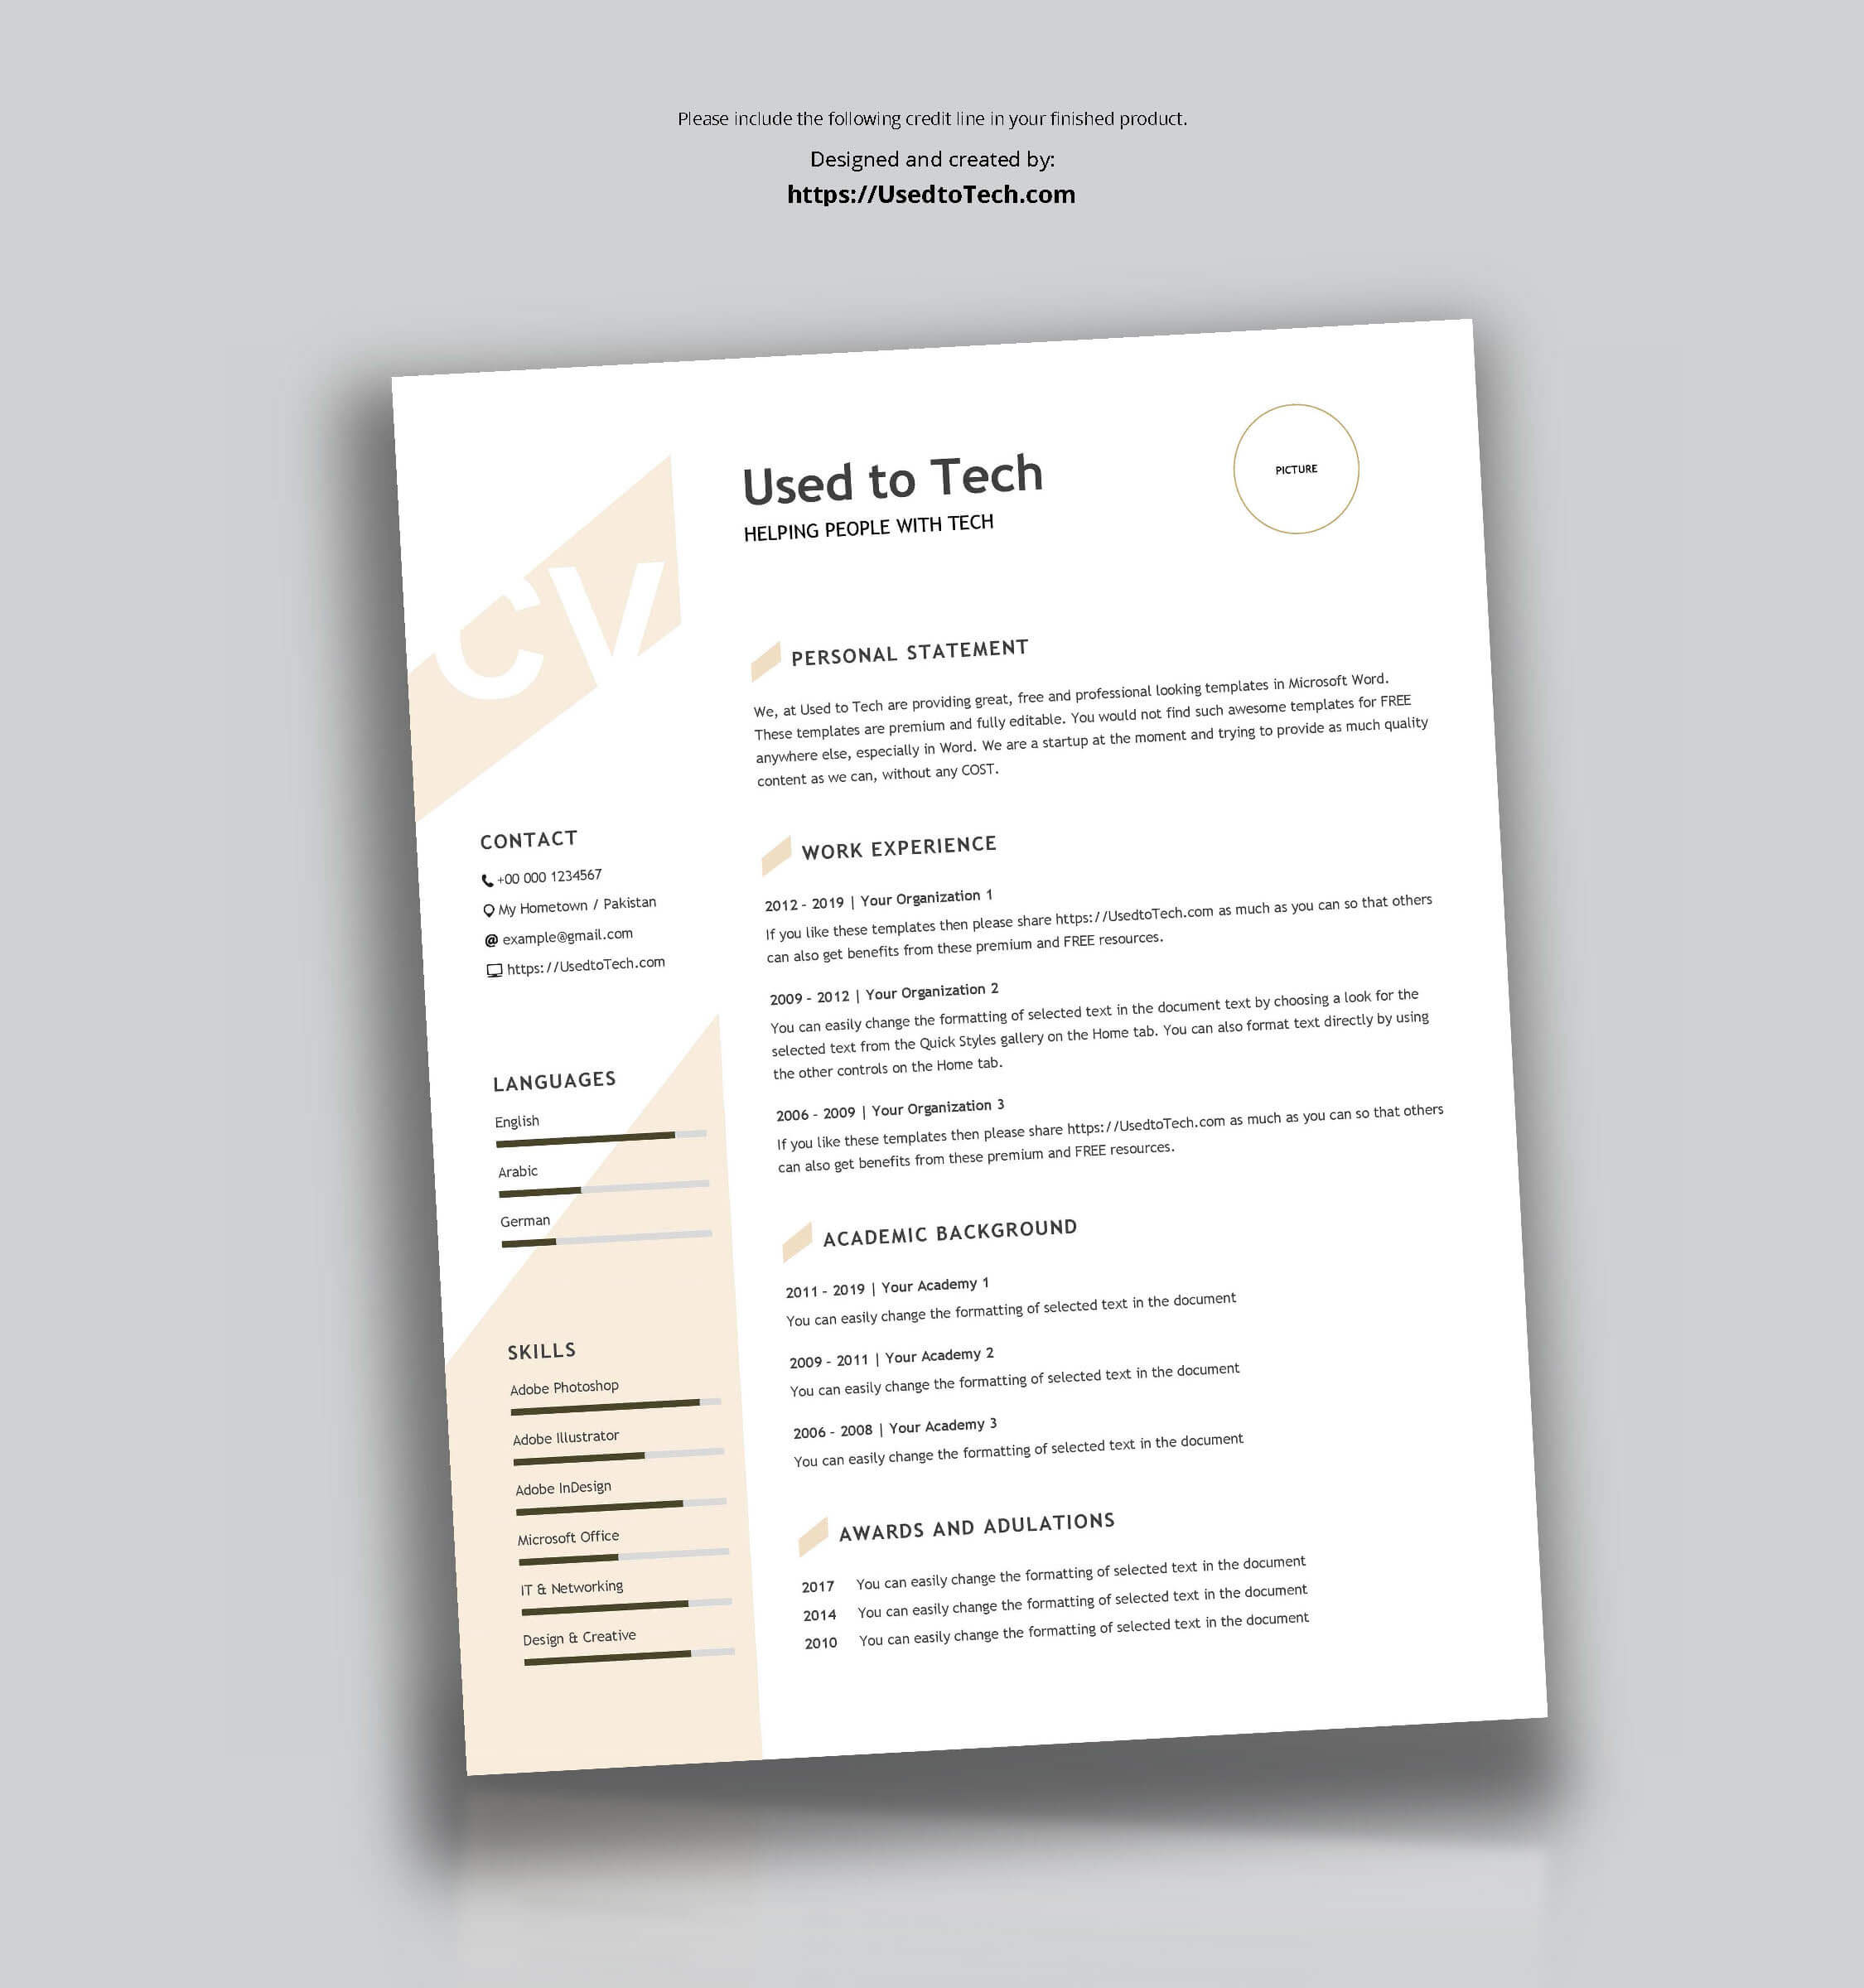 Modern Resume Template In Word Free – Used To Tech Intended For How To Get A Resume Template On Word